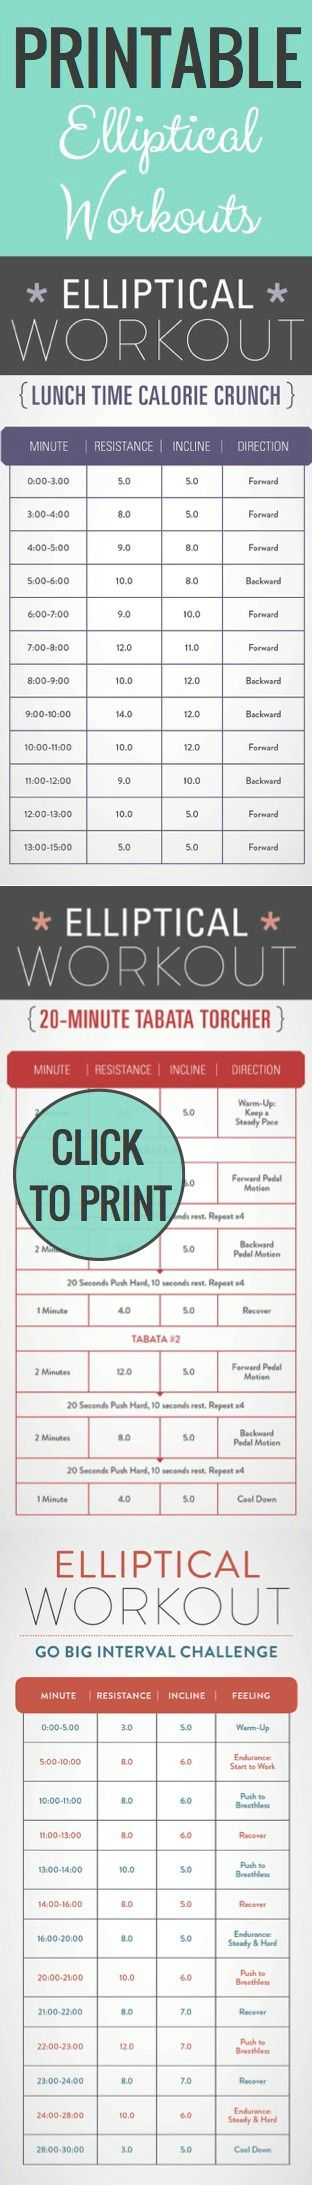 Print these Elliptical workouts and bring to the hotel, your basement or to the gym! Beat boredom and burn major calories!